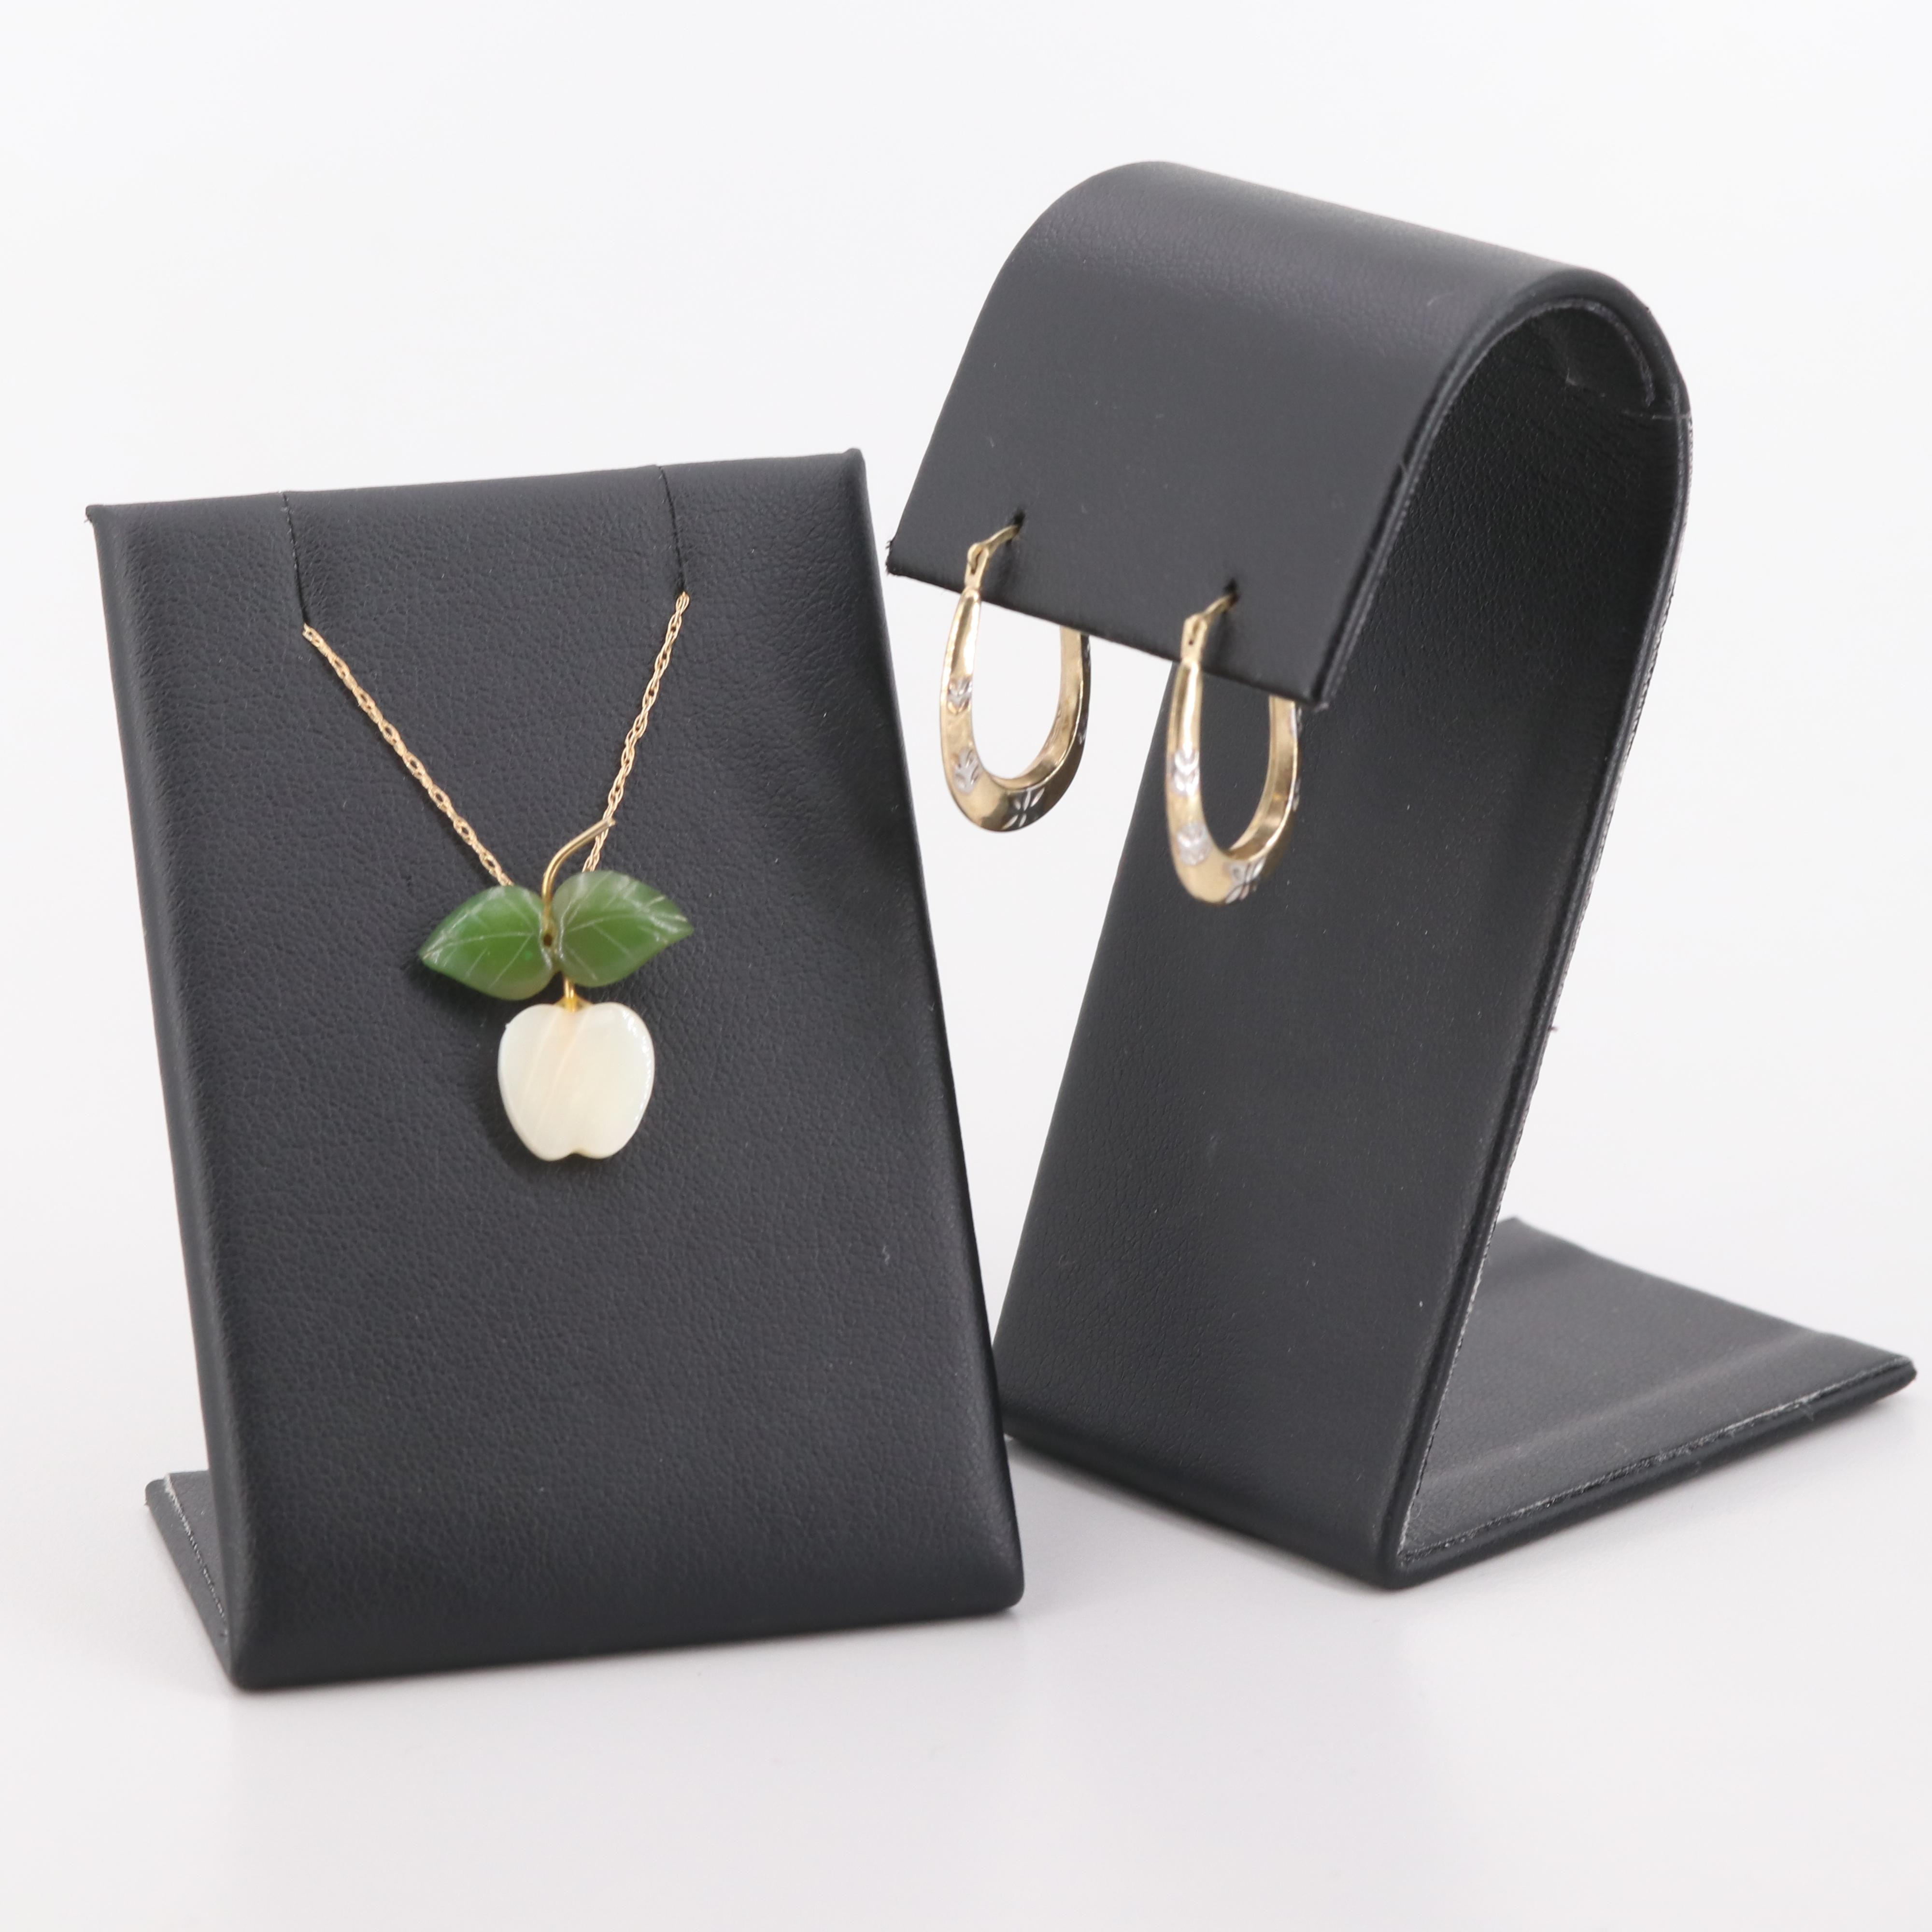 14K Yellow Gold Mother of Pearl and Nephrite Necklace with 10K Gold Earrings Set